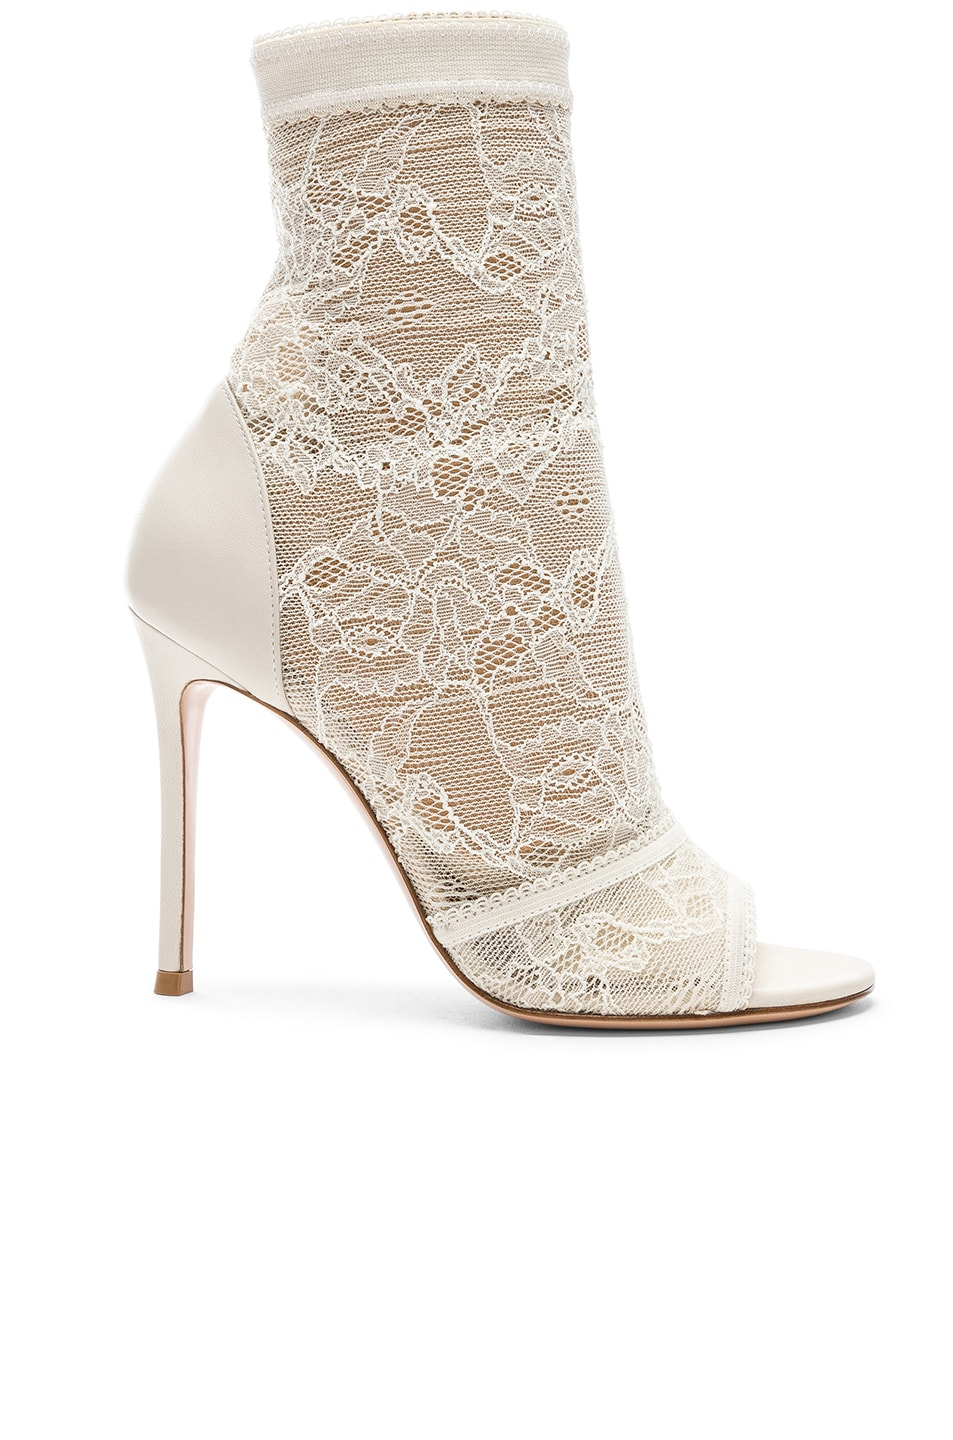 Image 1 of Gianvito Rossi Pizzo Stretch Nappa Ankle Booties in Off White